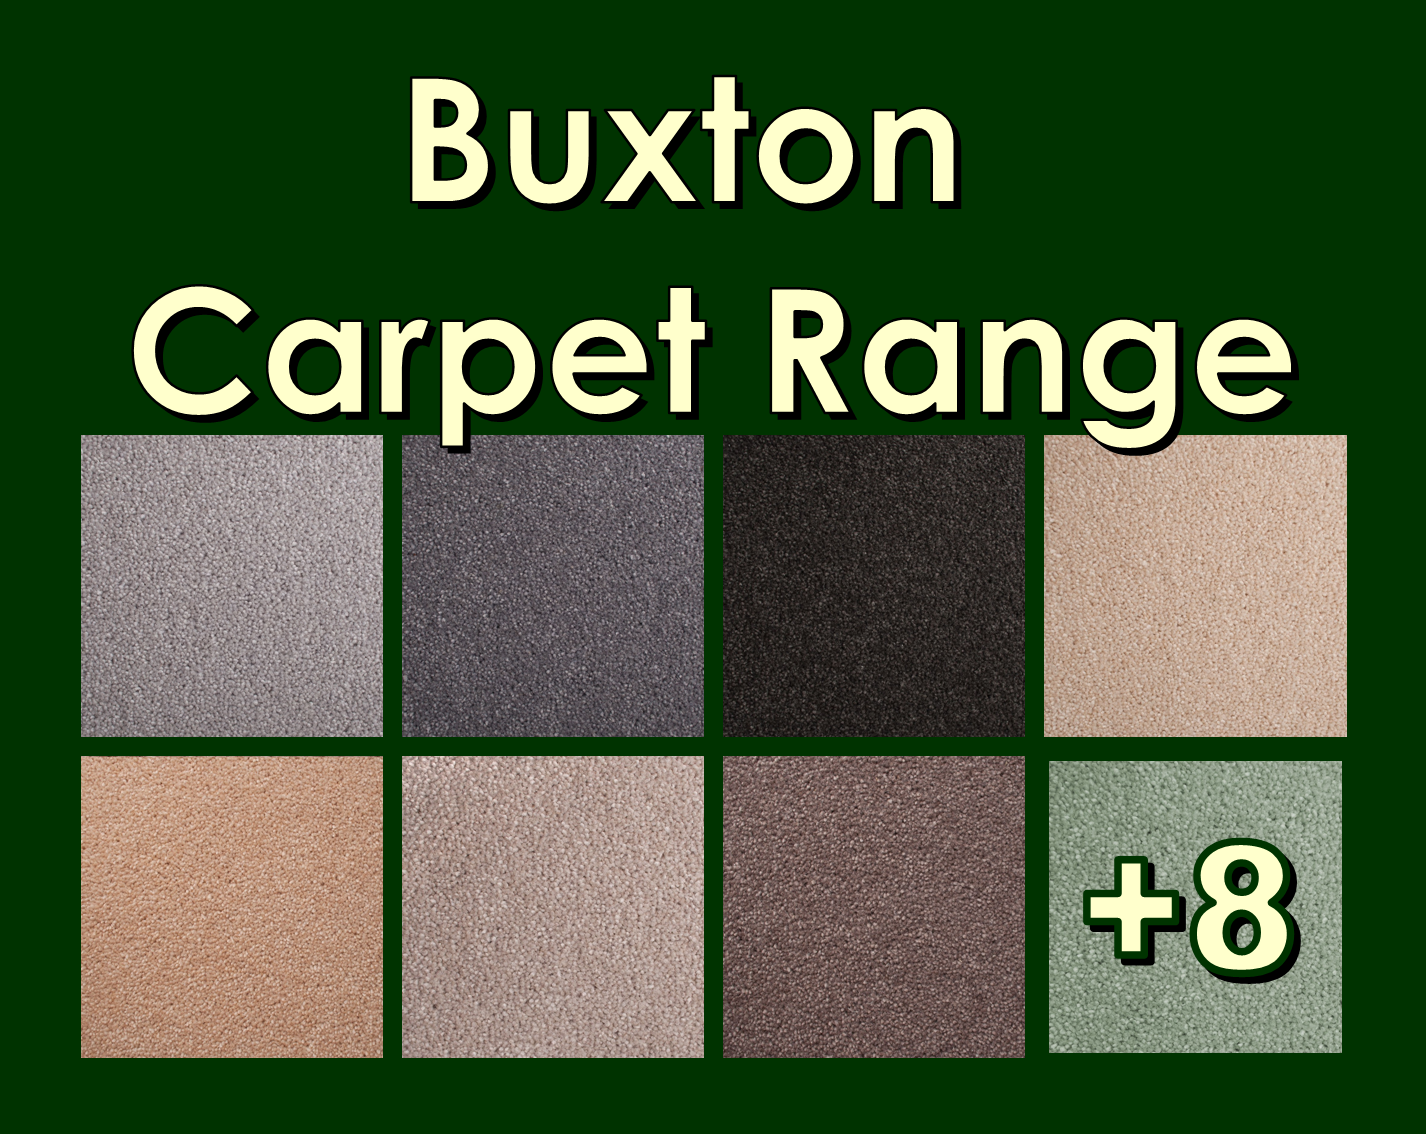 View Buxton Carpet Range